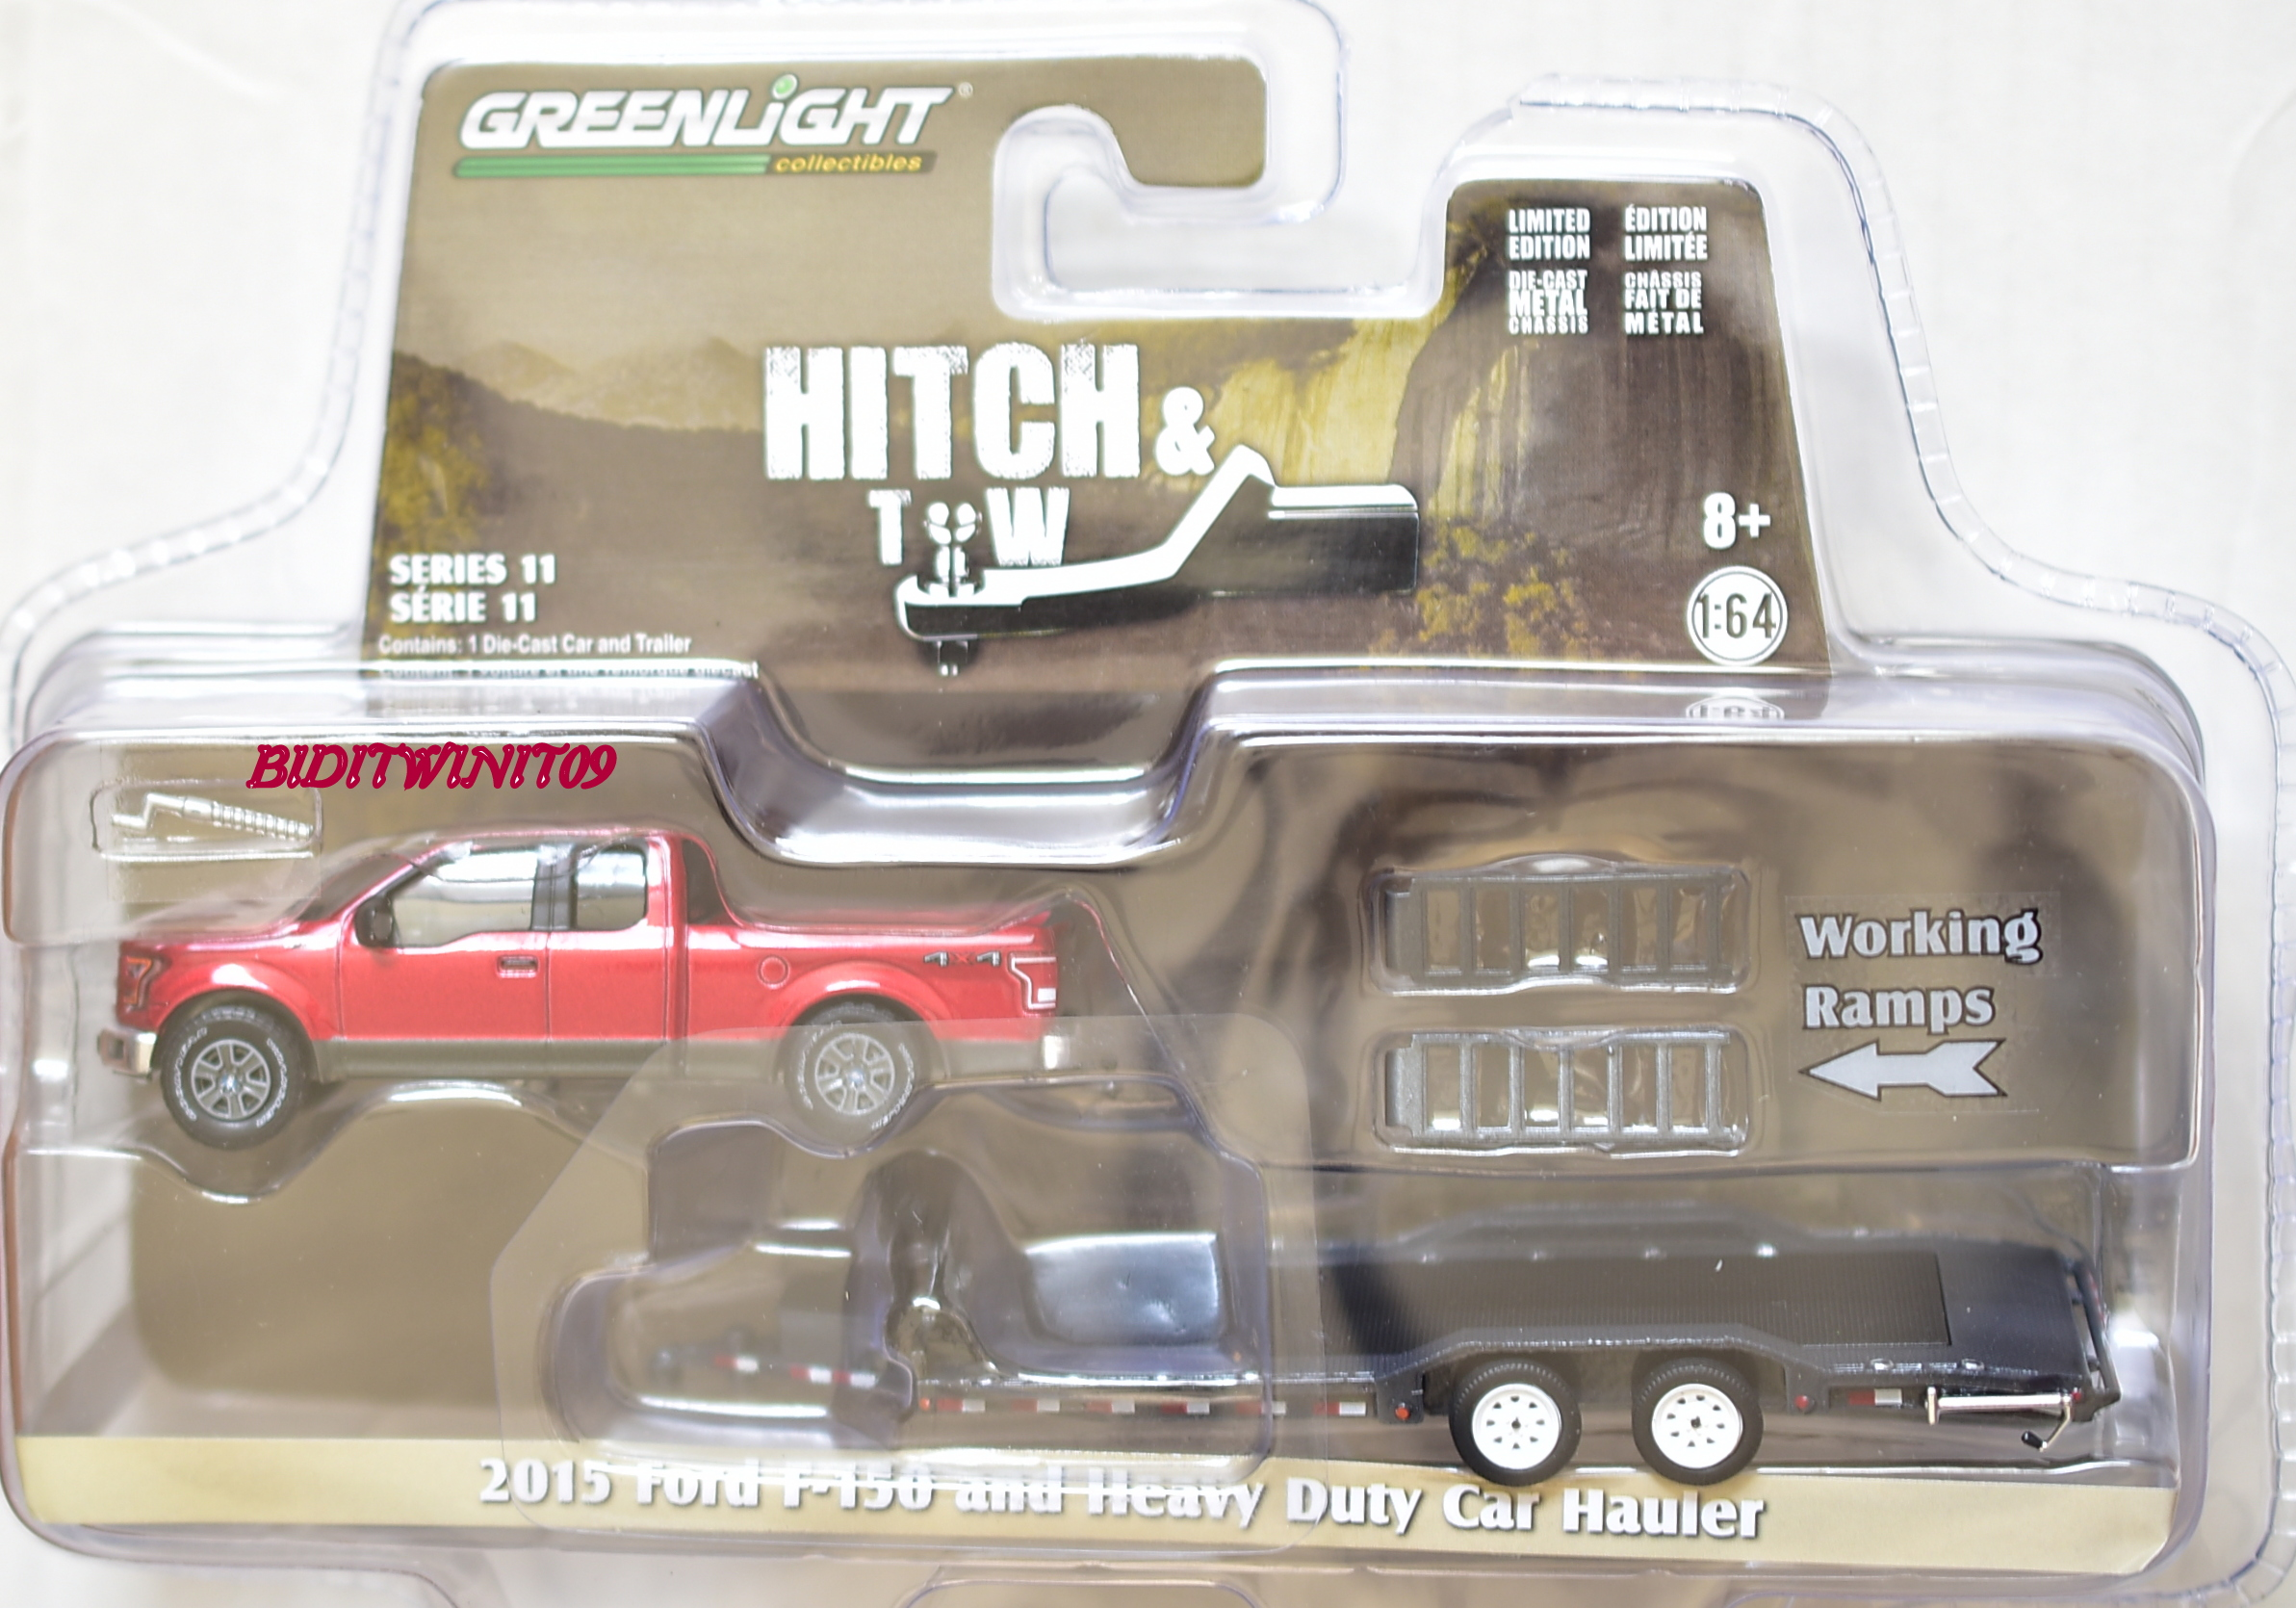 GREENLIGHT HITCH & TOW 2015 FORD F-150 AND HEAVY DUTY CAR HAULER SERIES11